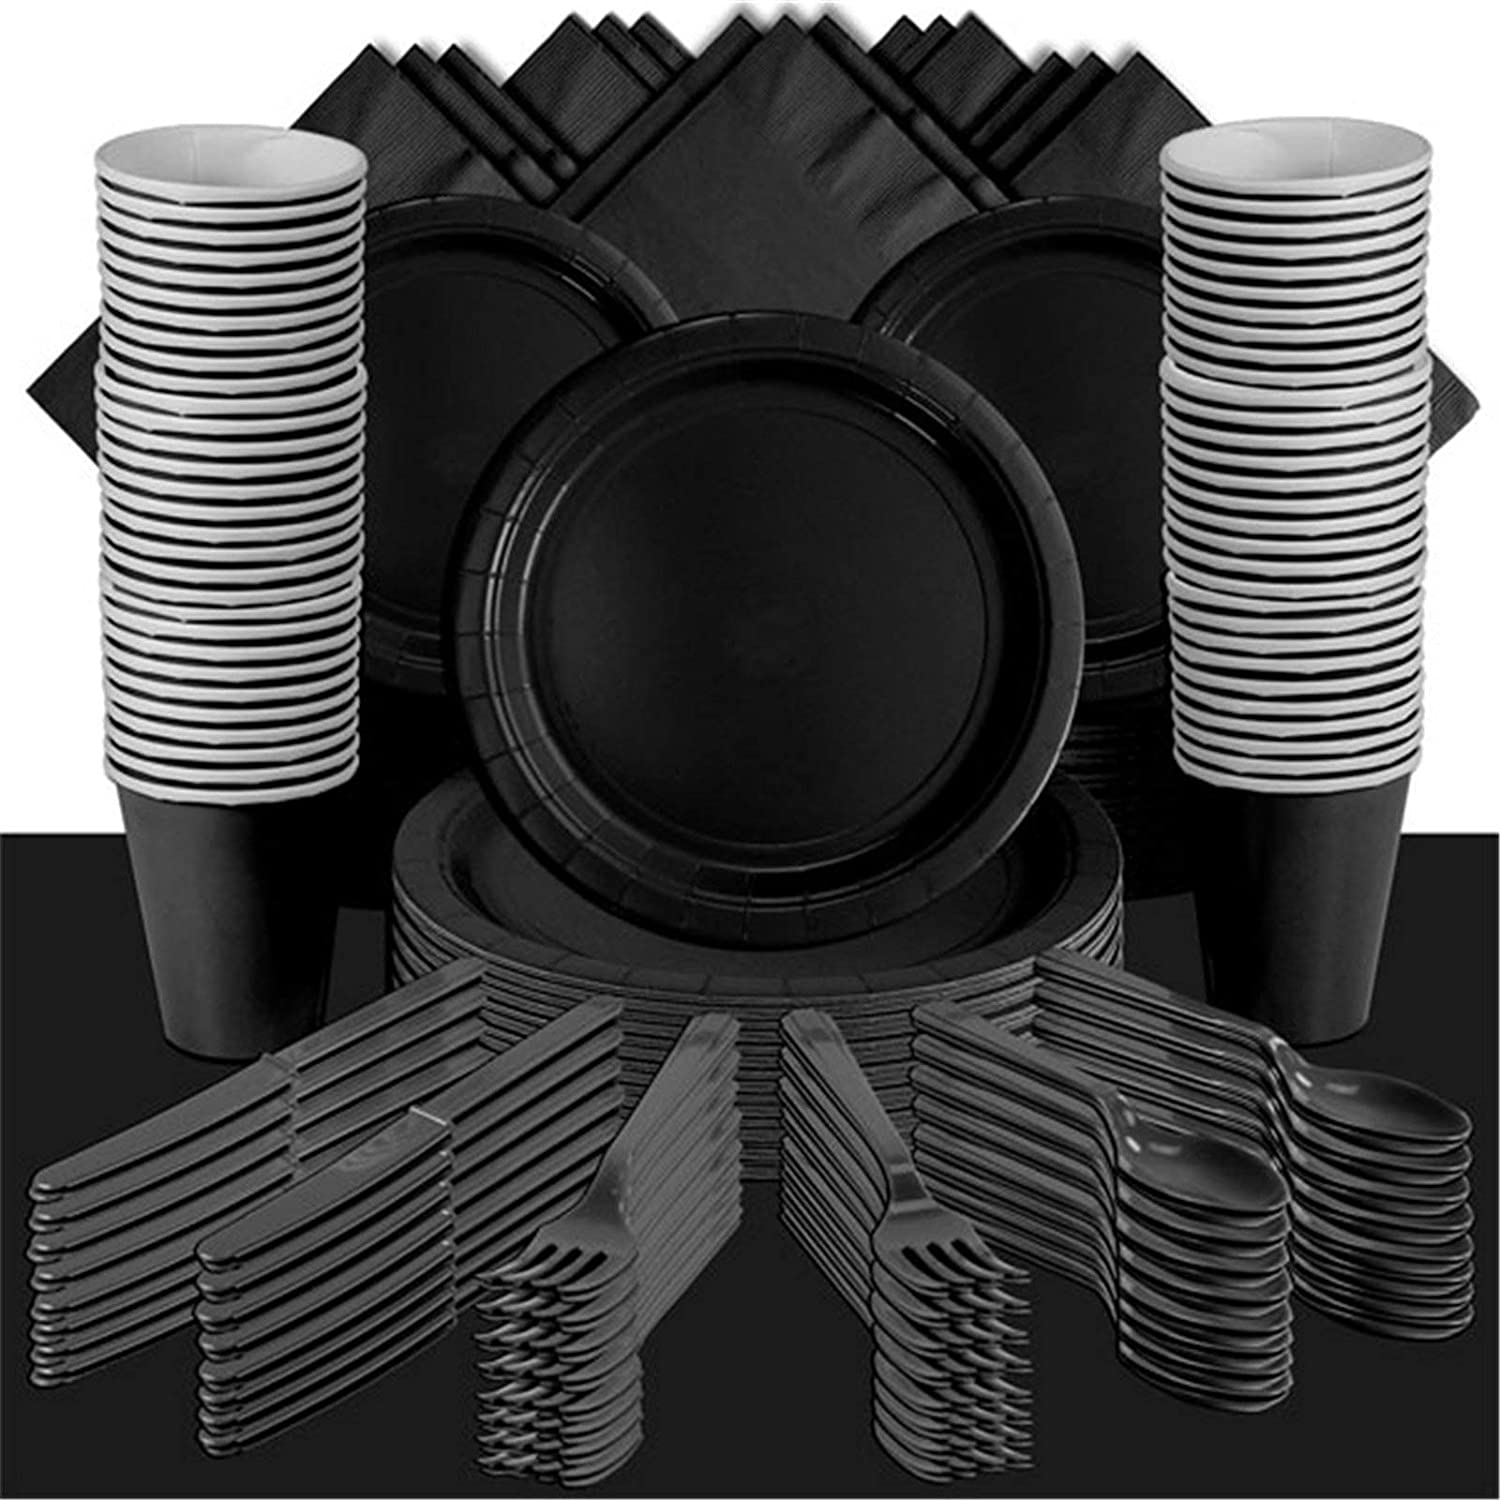 Plain Black Themed Party Supplies  Solid Colour Pack For 100 People